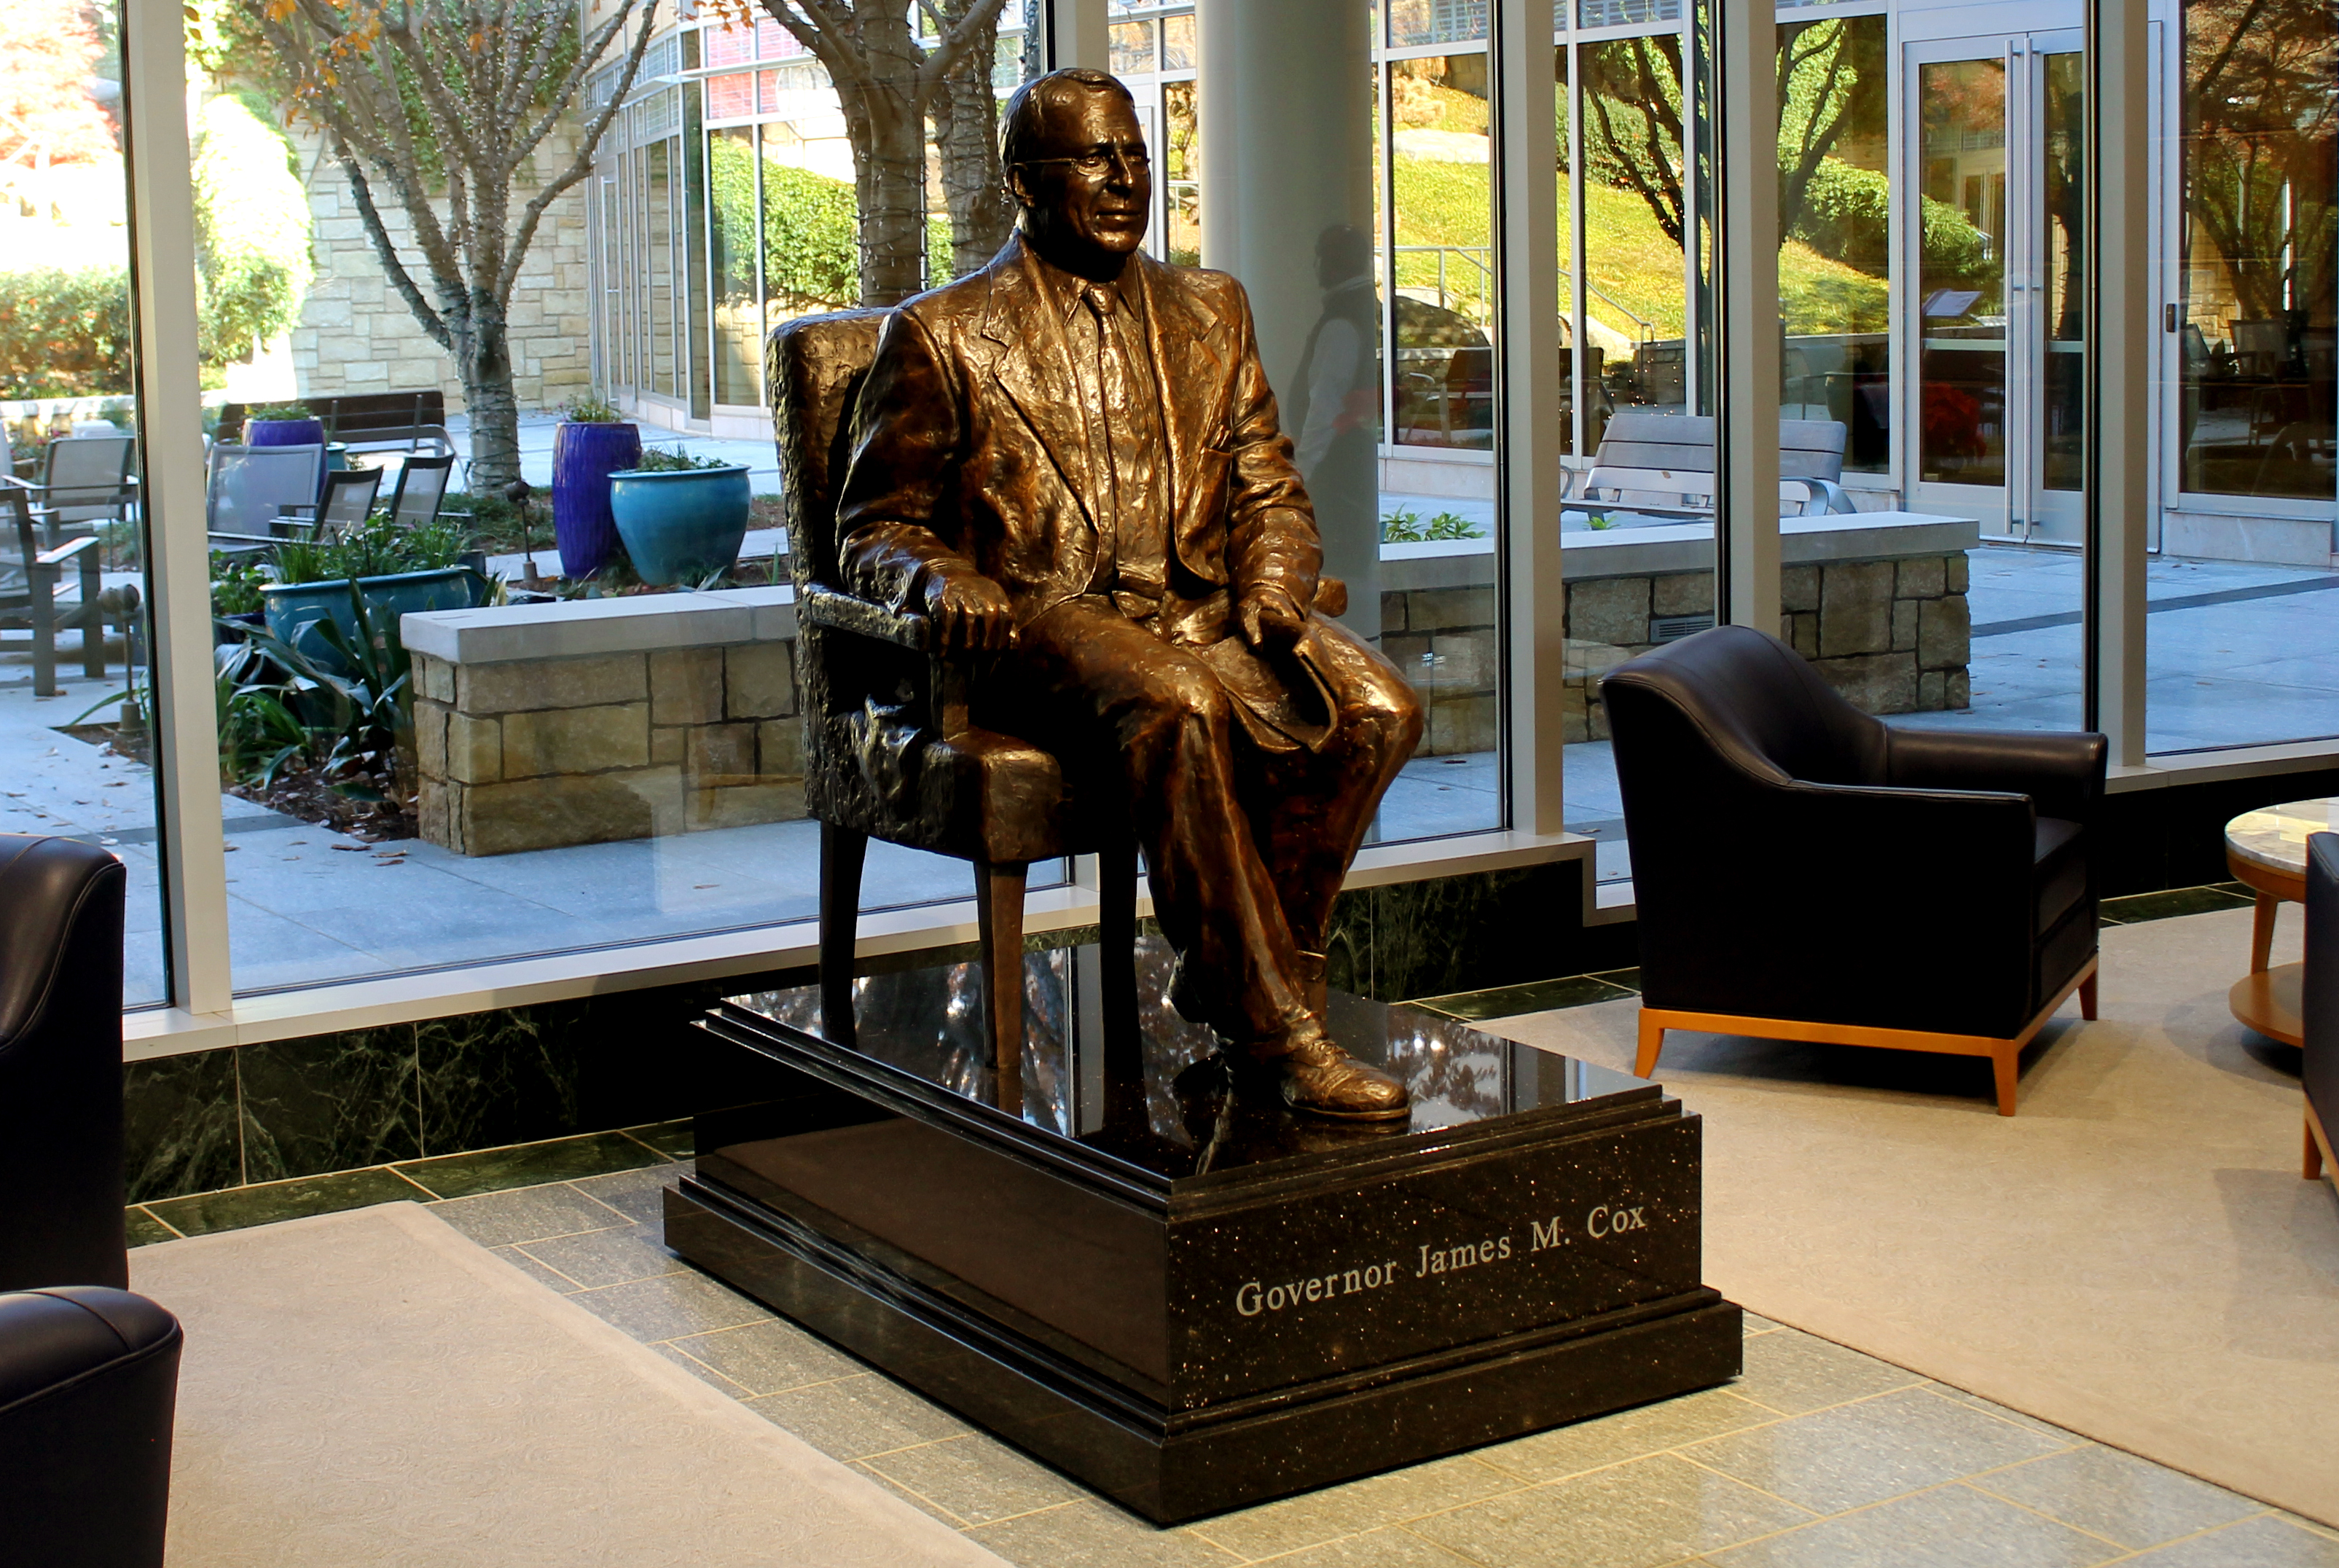 Governor James M. Cox - Bronze Sculpture in Atlanta, GA